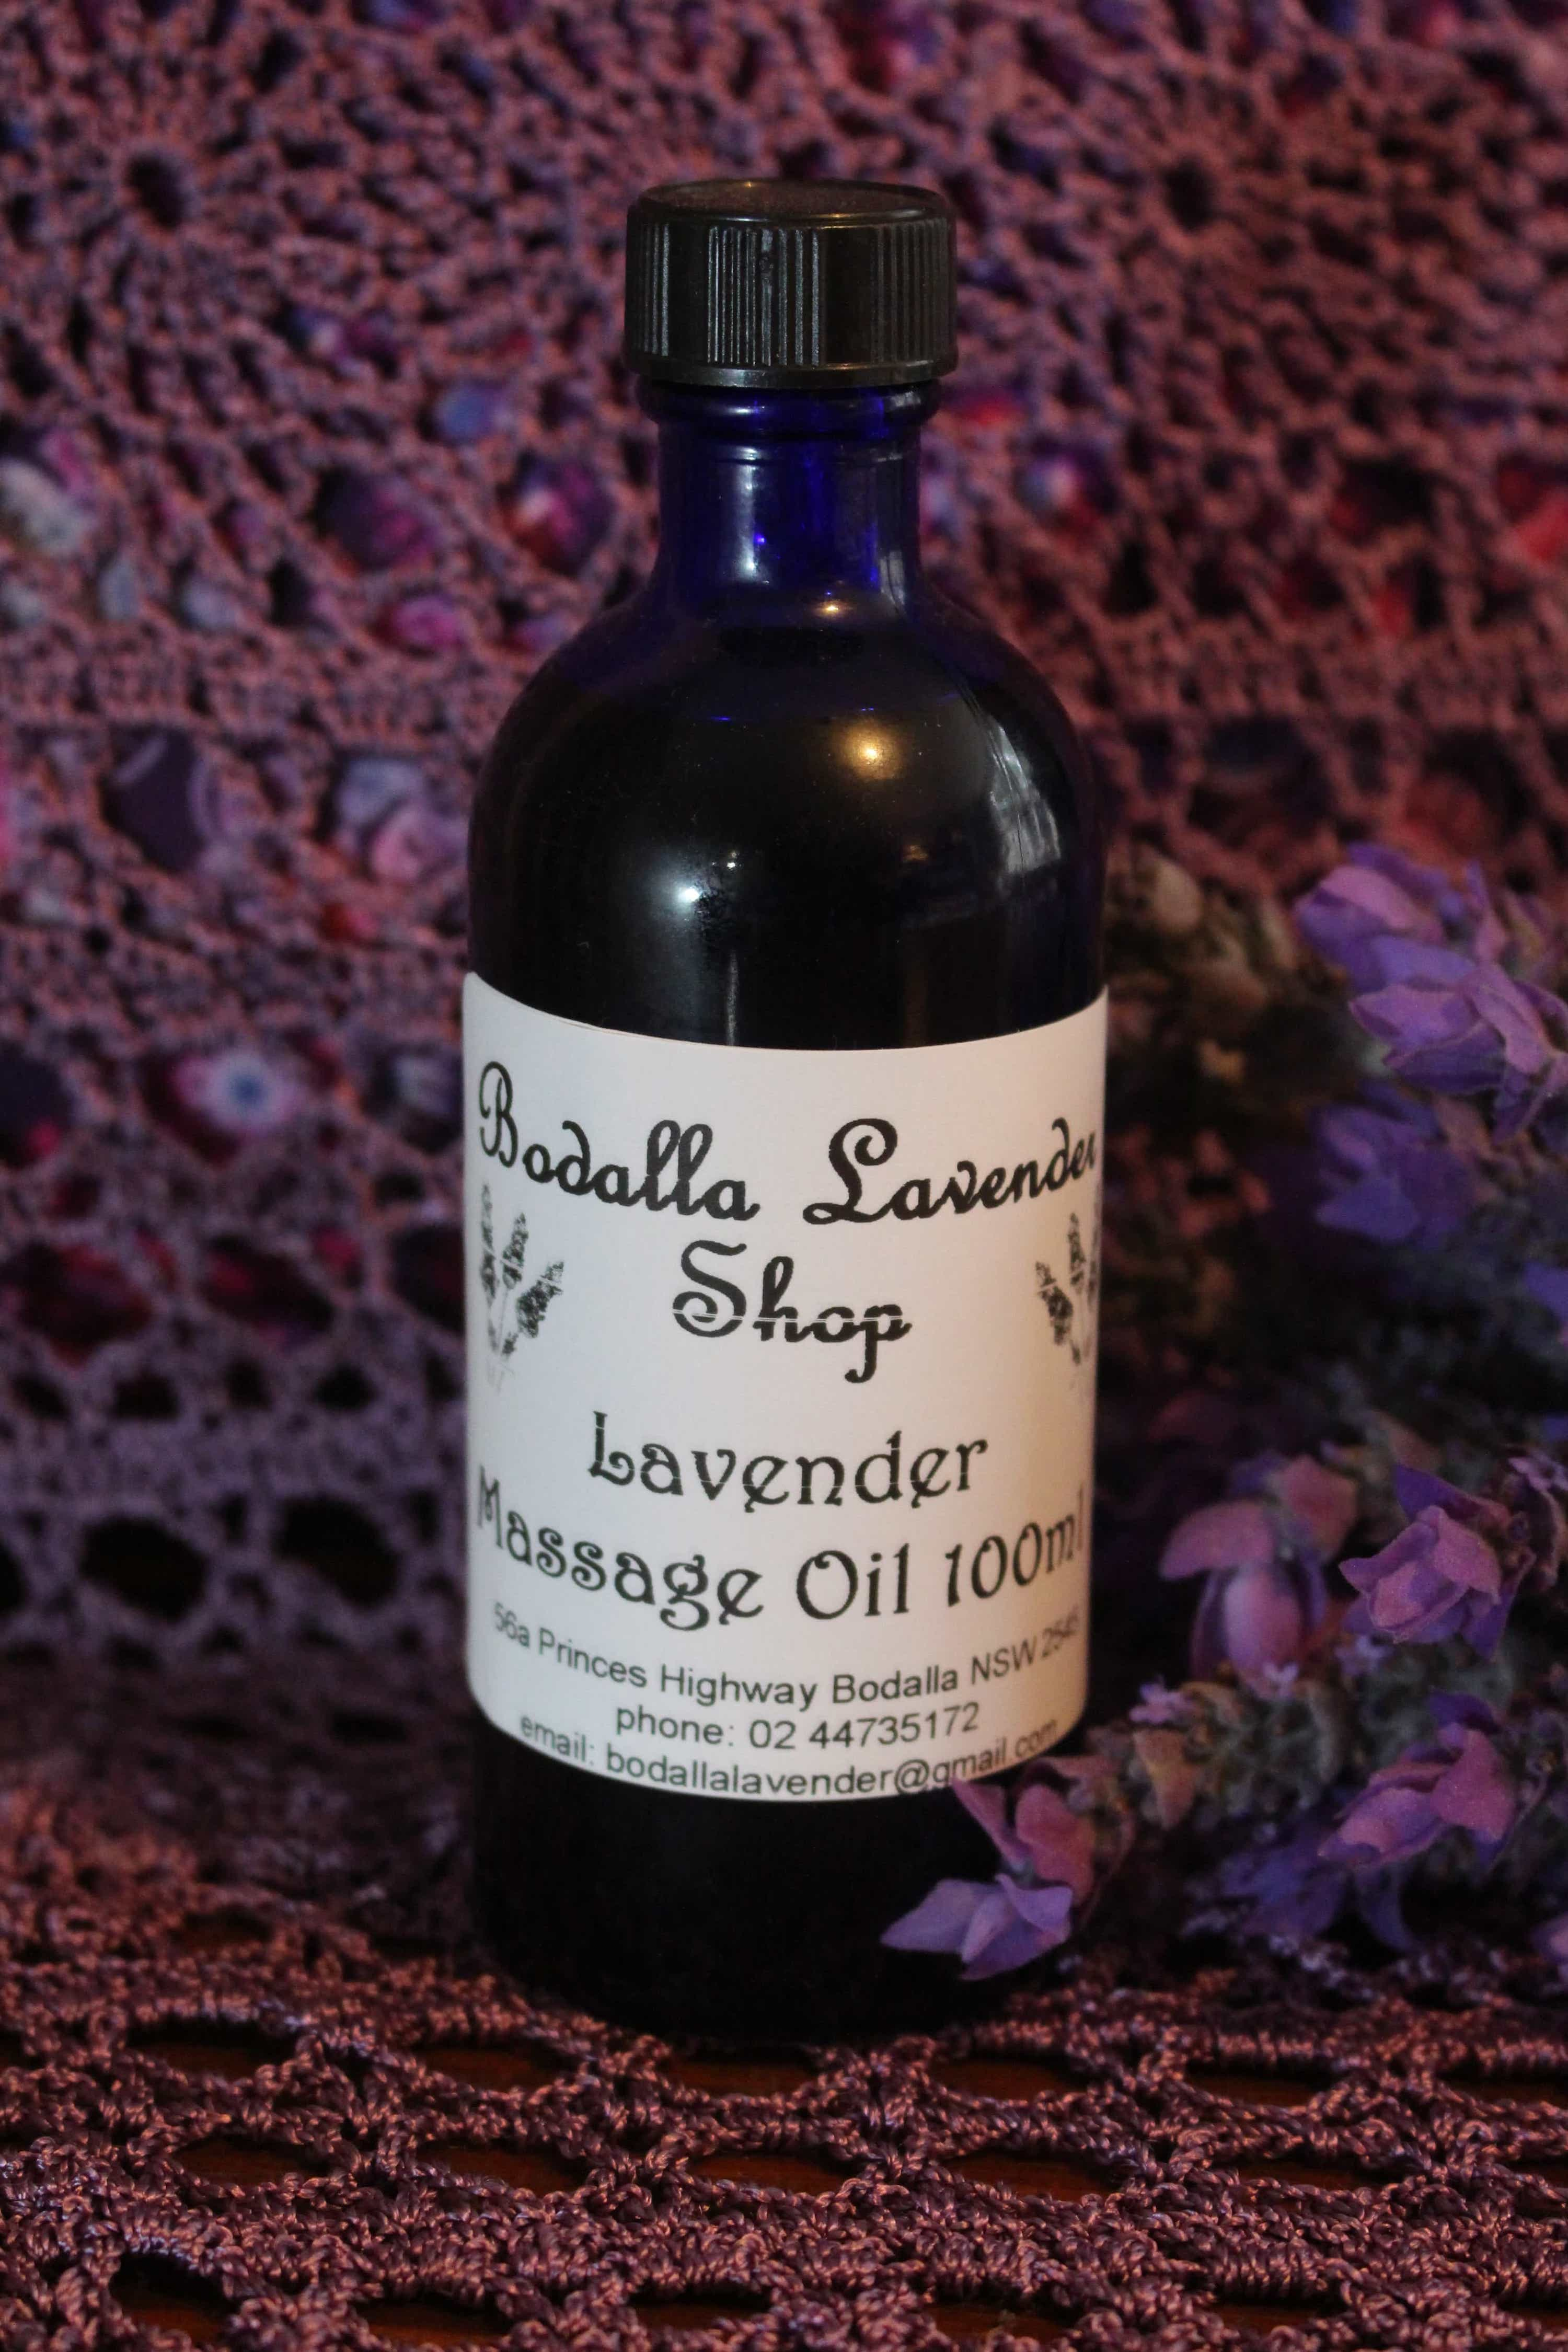 Photograph of an Lavender Massage Oil 100ml product